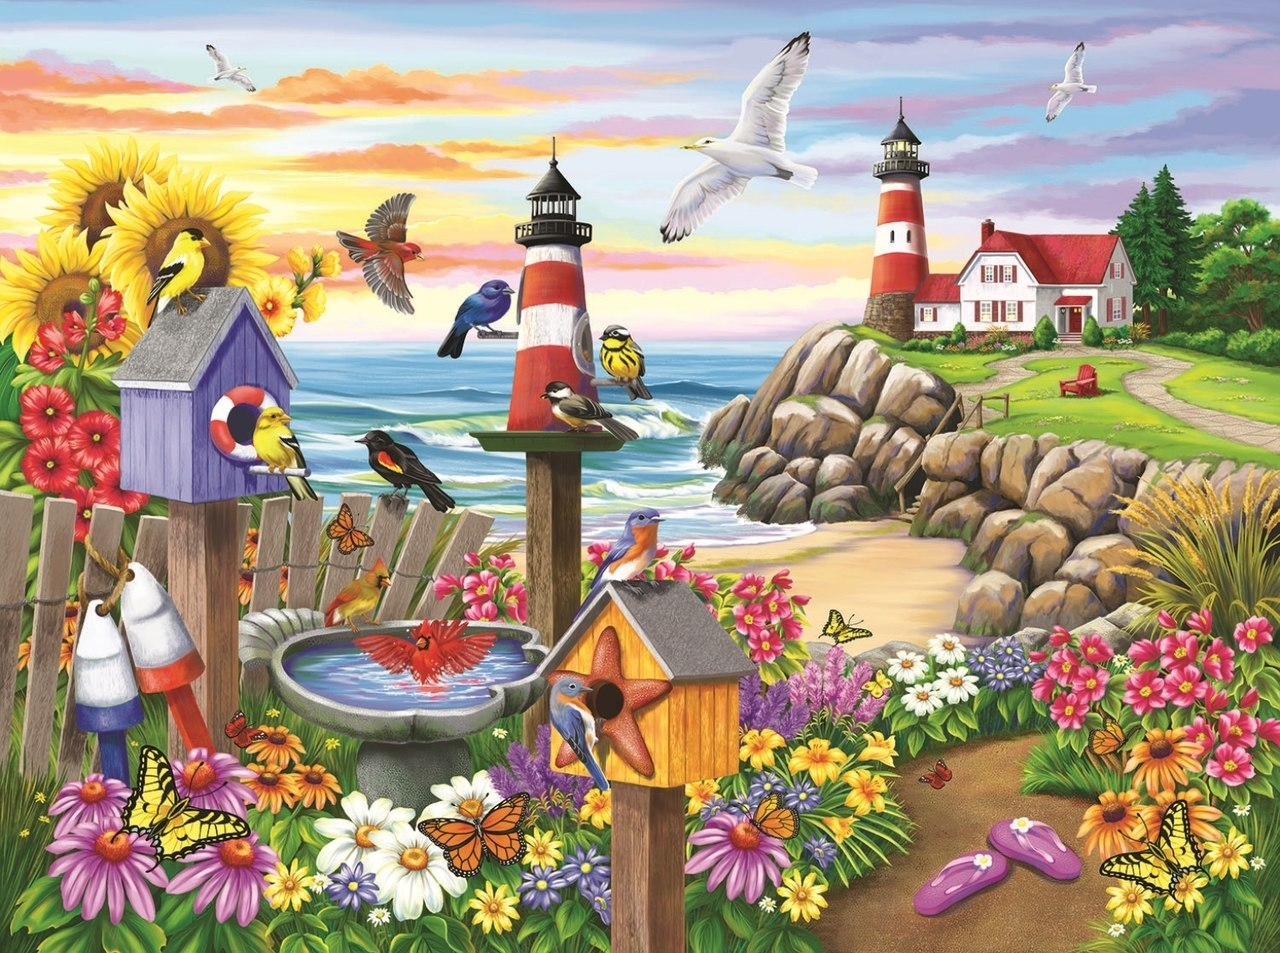 Garden by the Sea - 1000pc Jigsaw Puzzle By Sunsout  			  					NEW